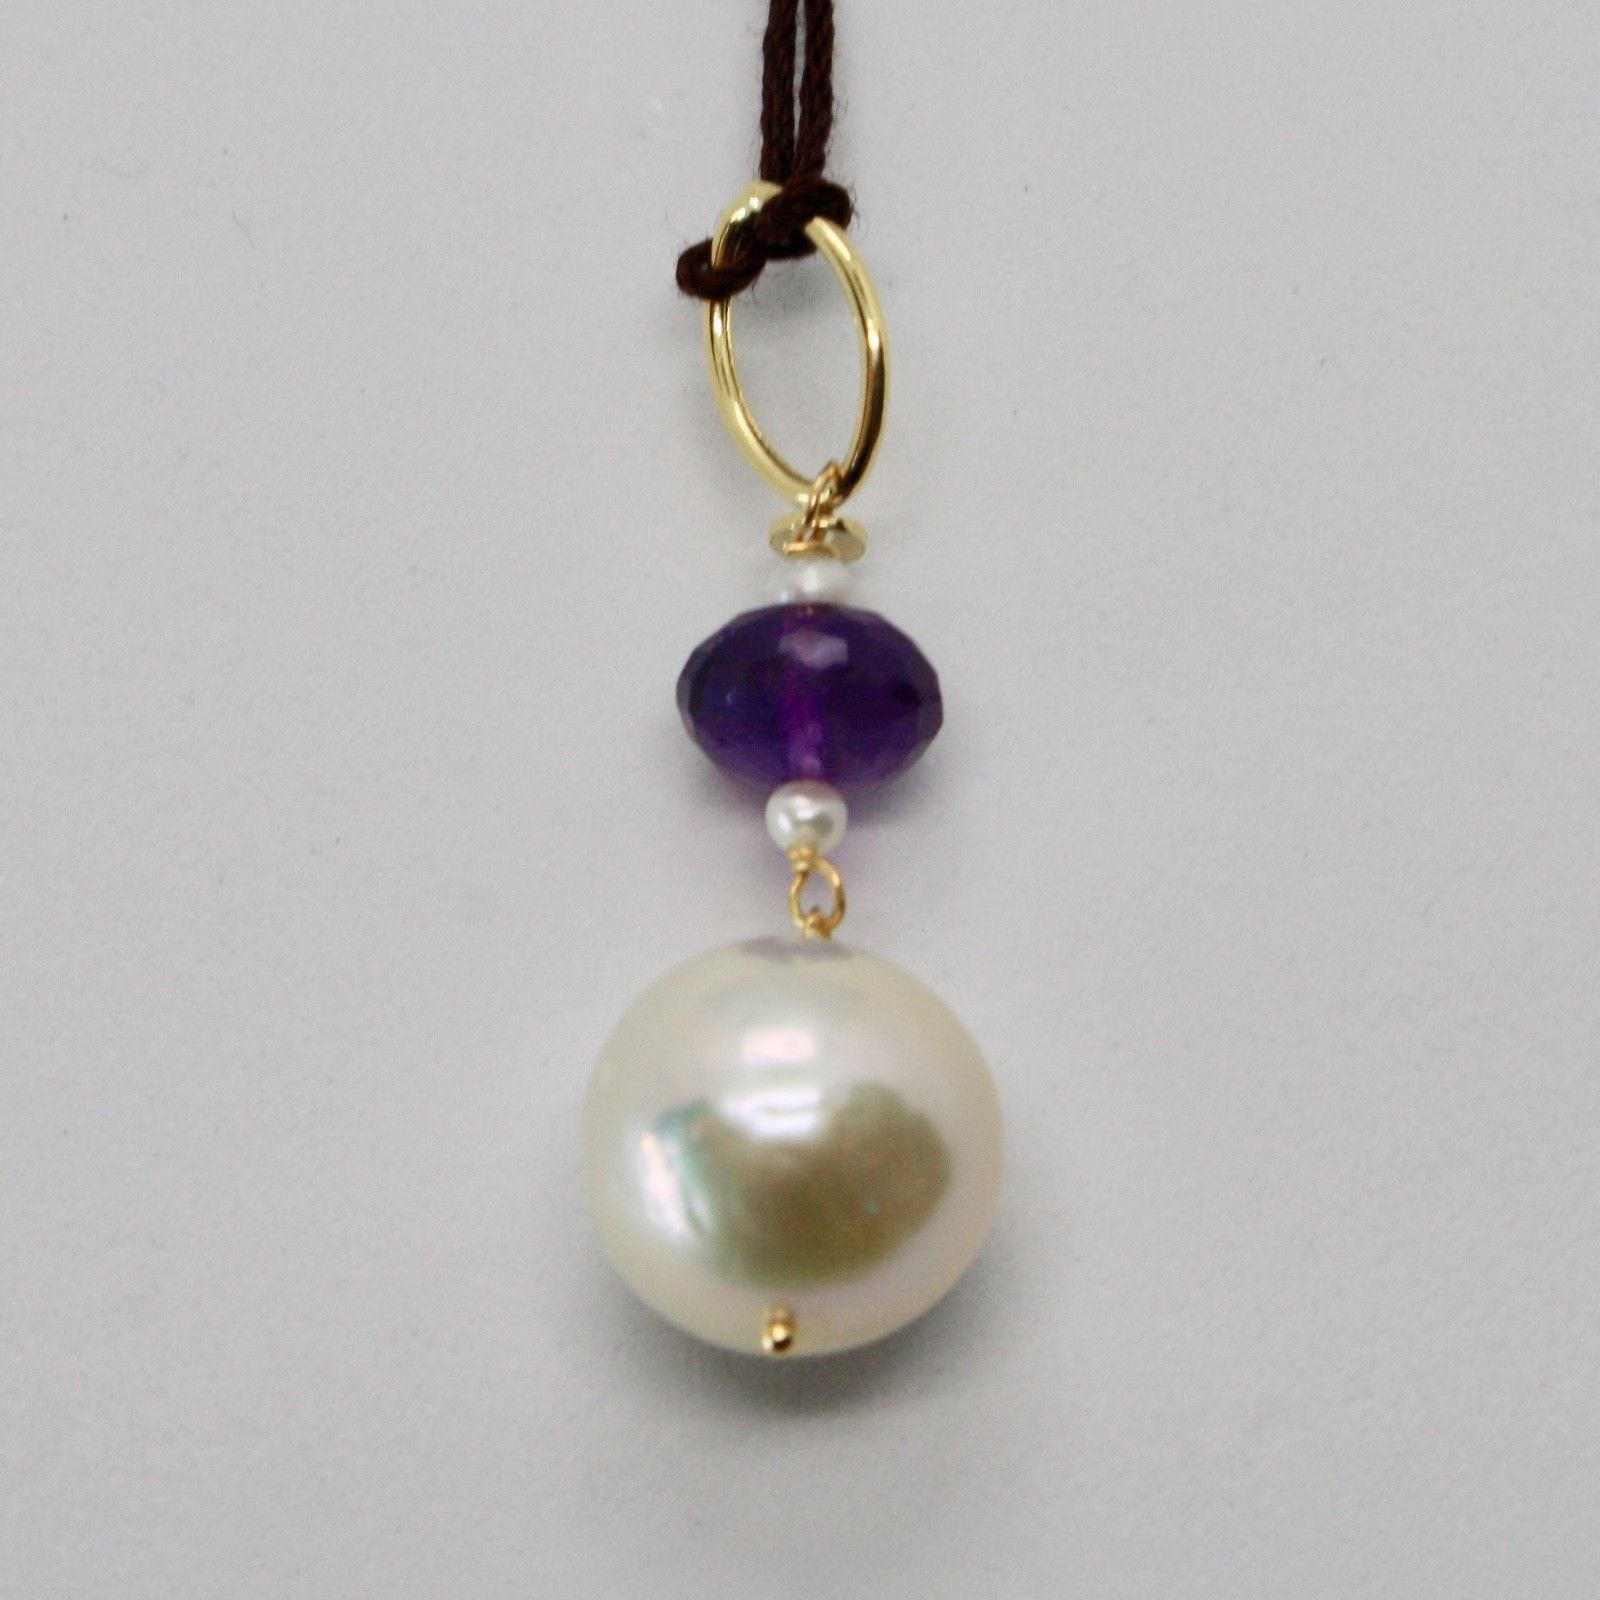 PENDANT YELLOW GOLD 18KT 750 WITH PEARL WHITE FRESH WATER AND AMETHYST PURPLE